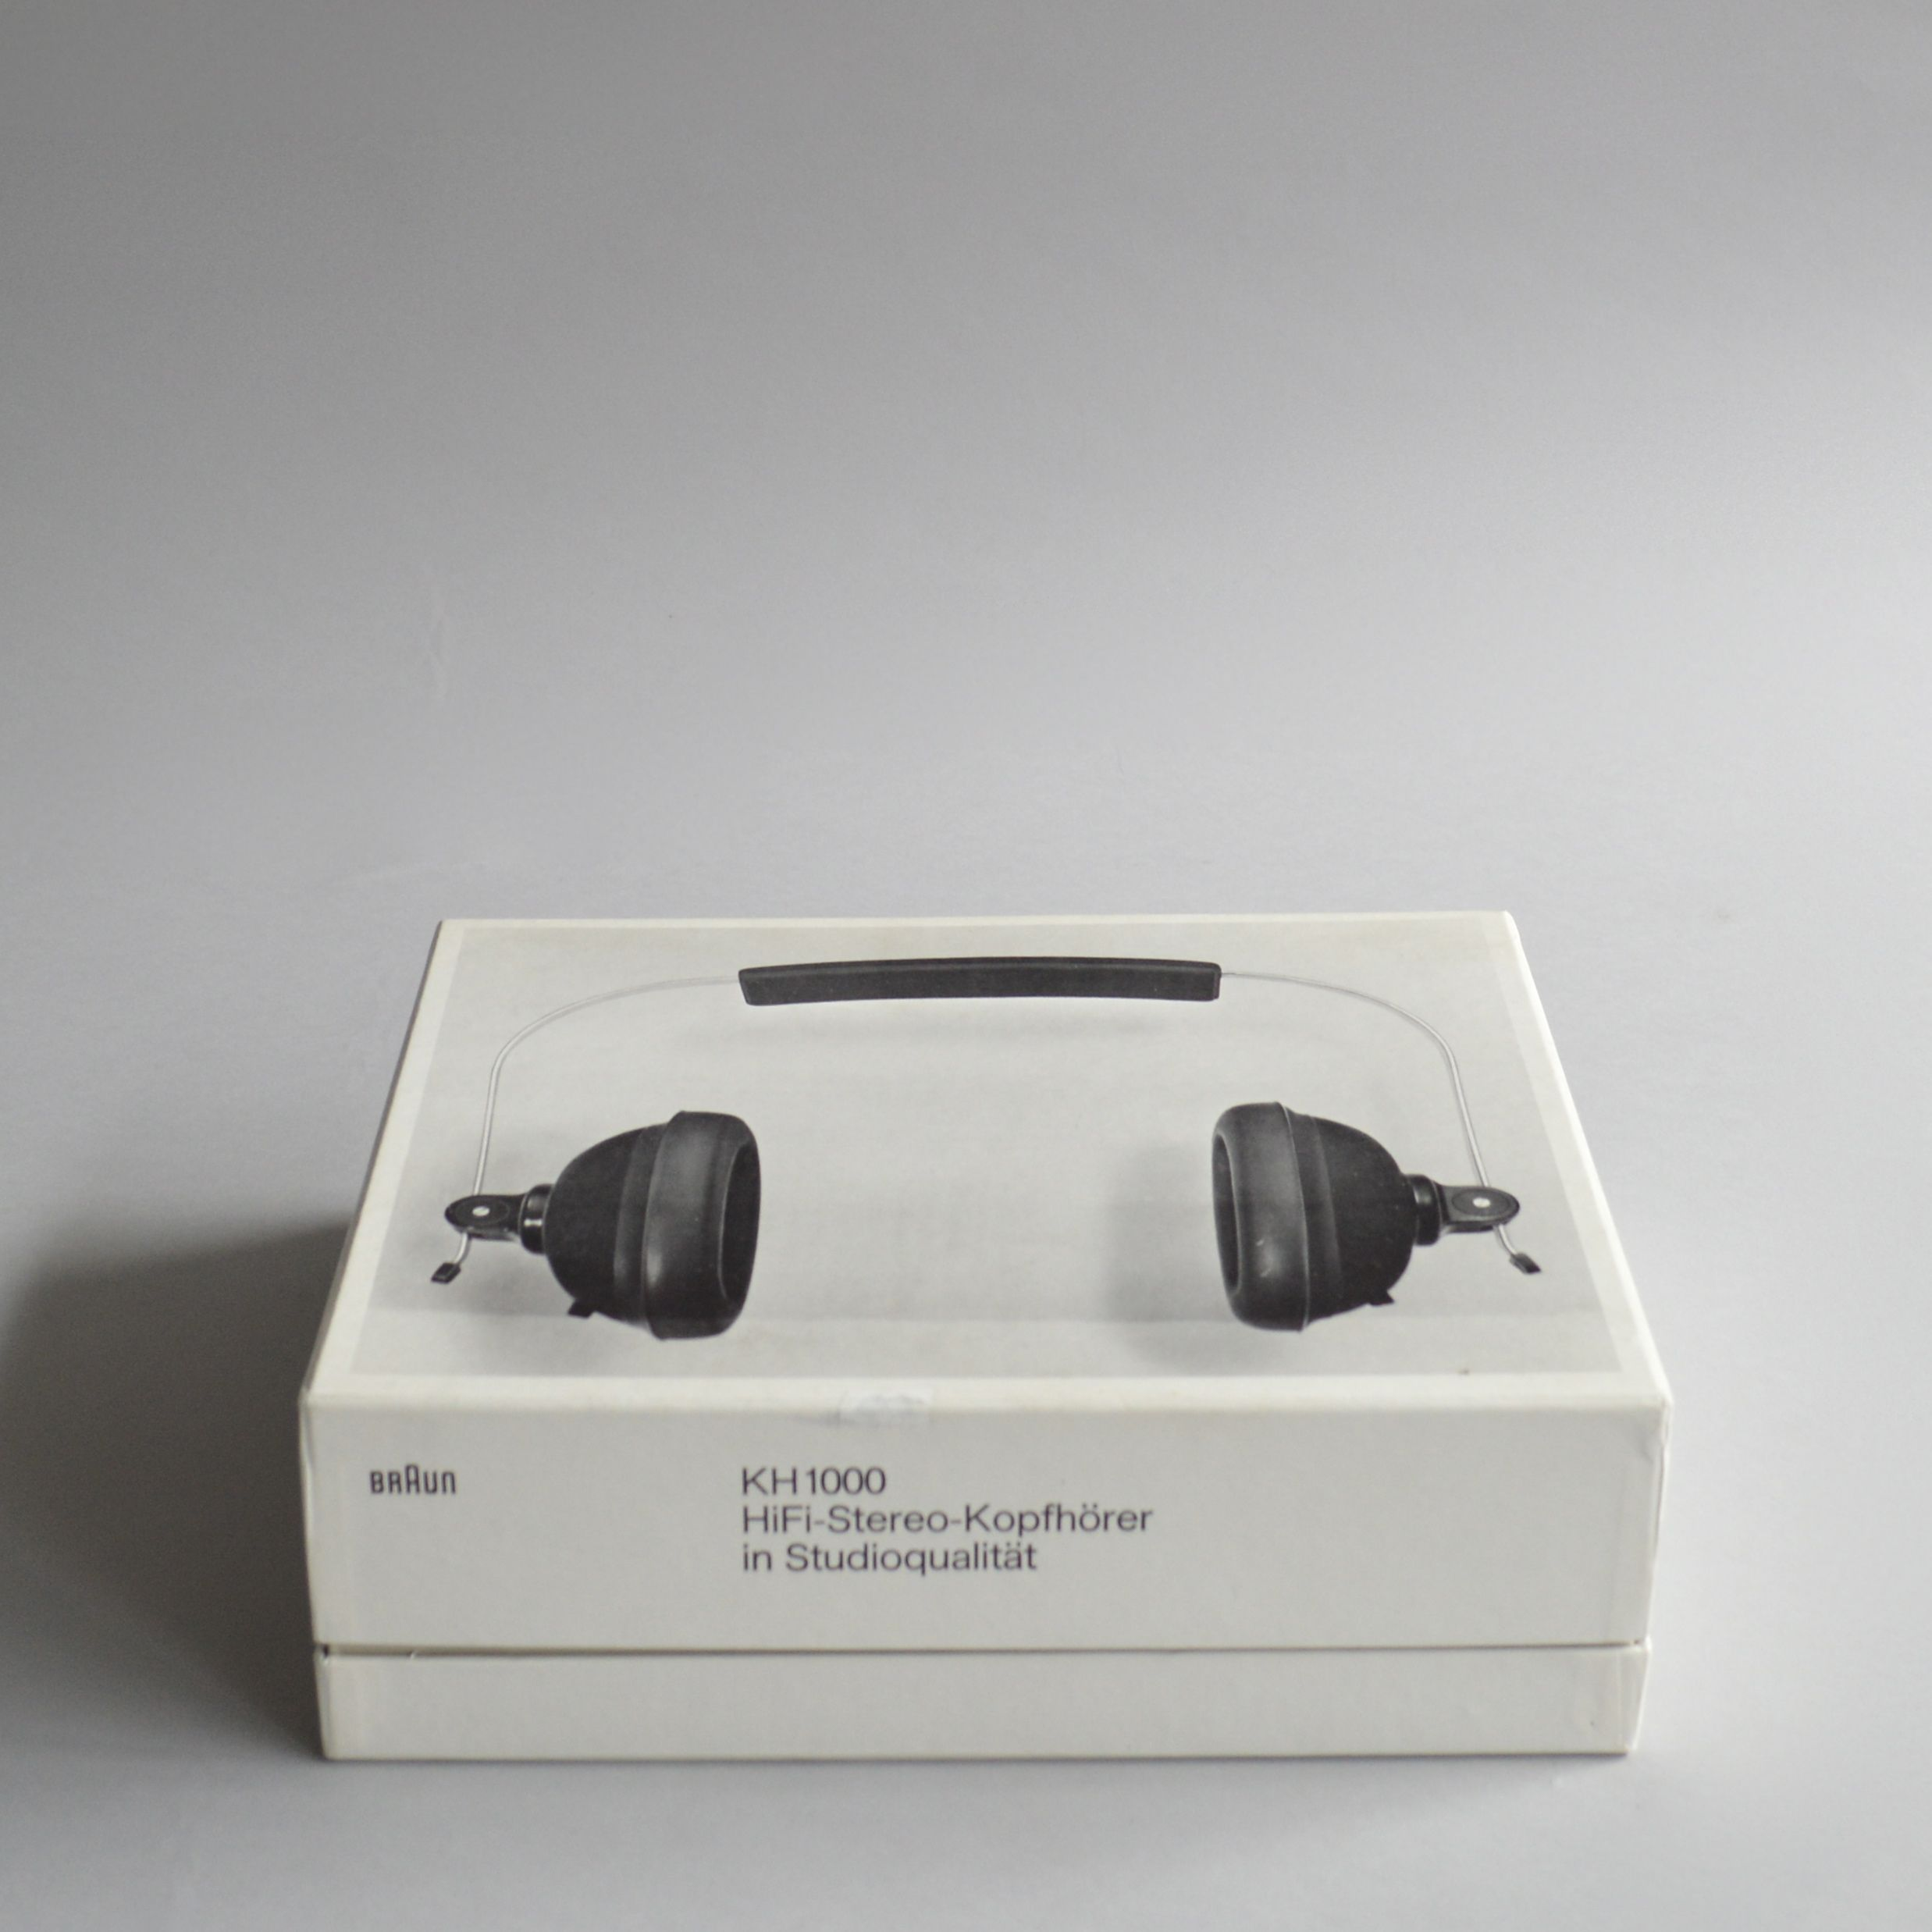 Braun kh 1000 dieter rams product design and package design for Industrial design packaging